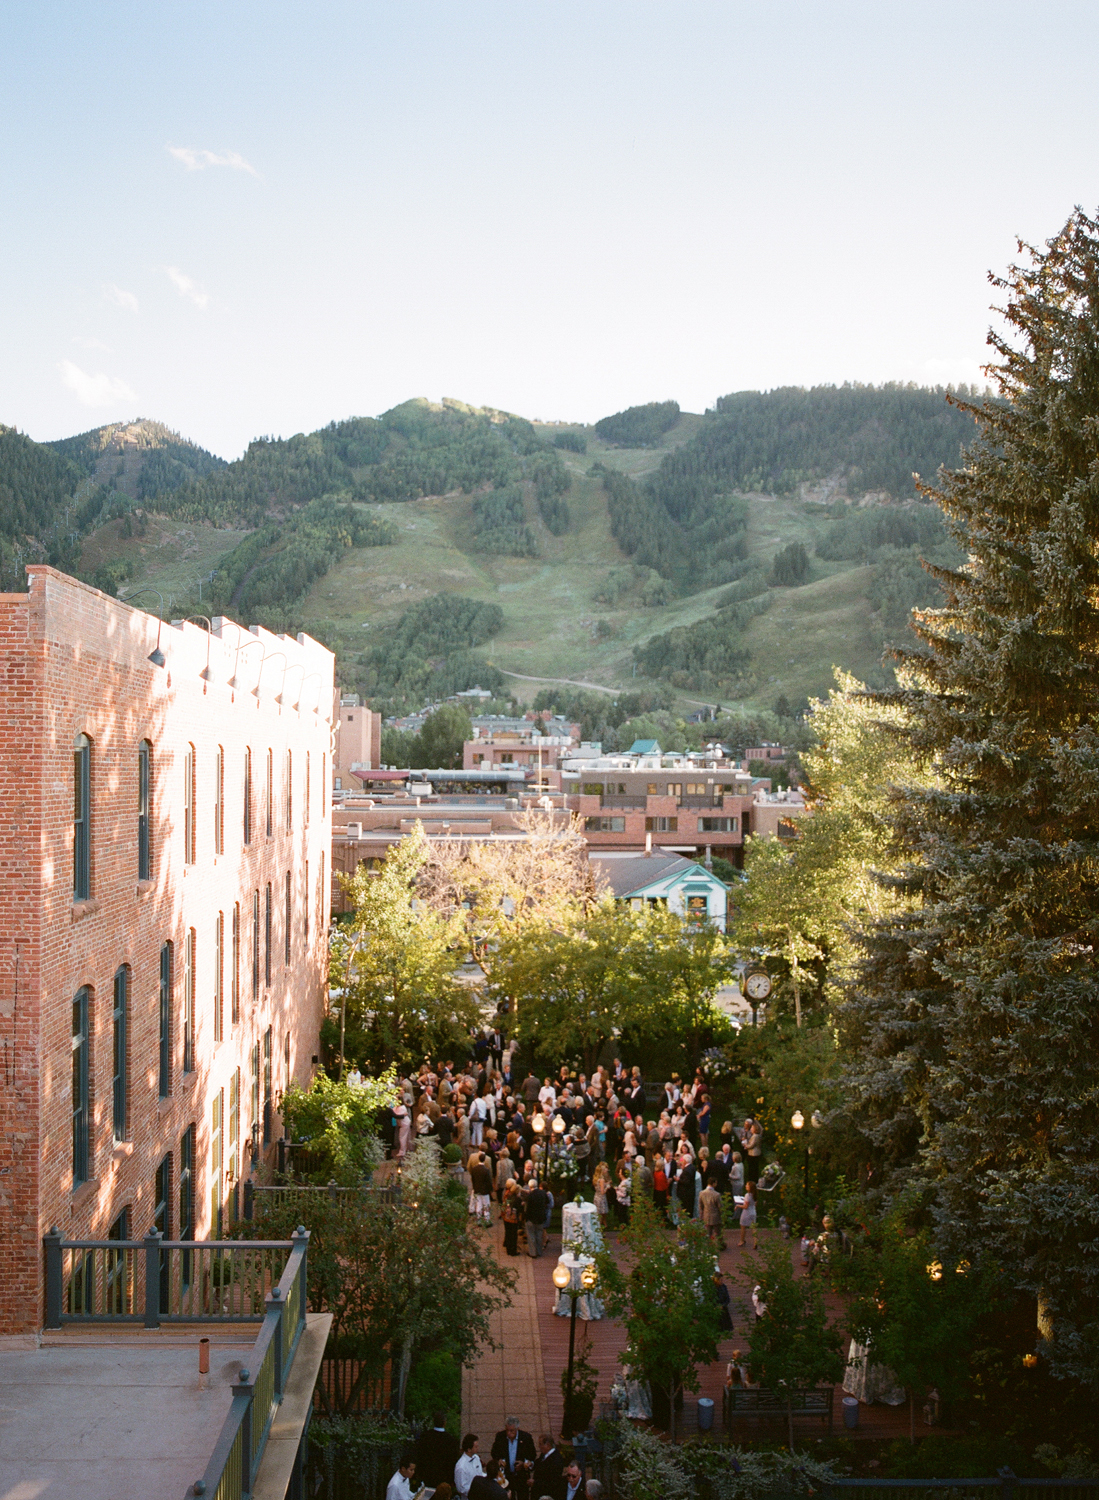 View of Hotel Jerome patio party from above